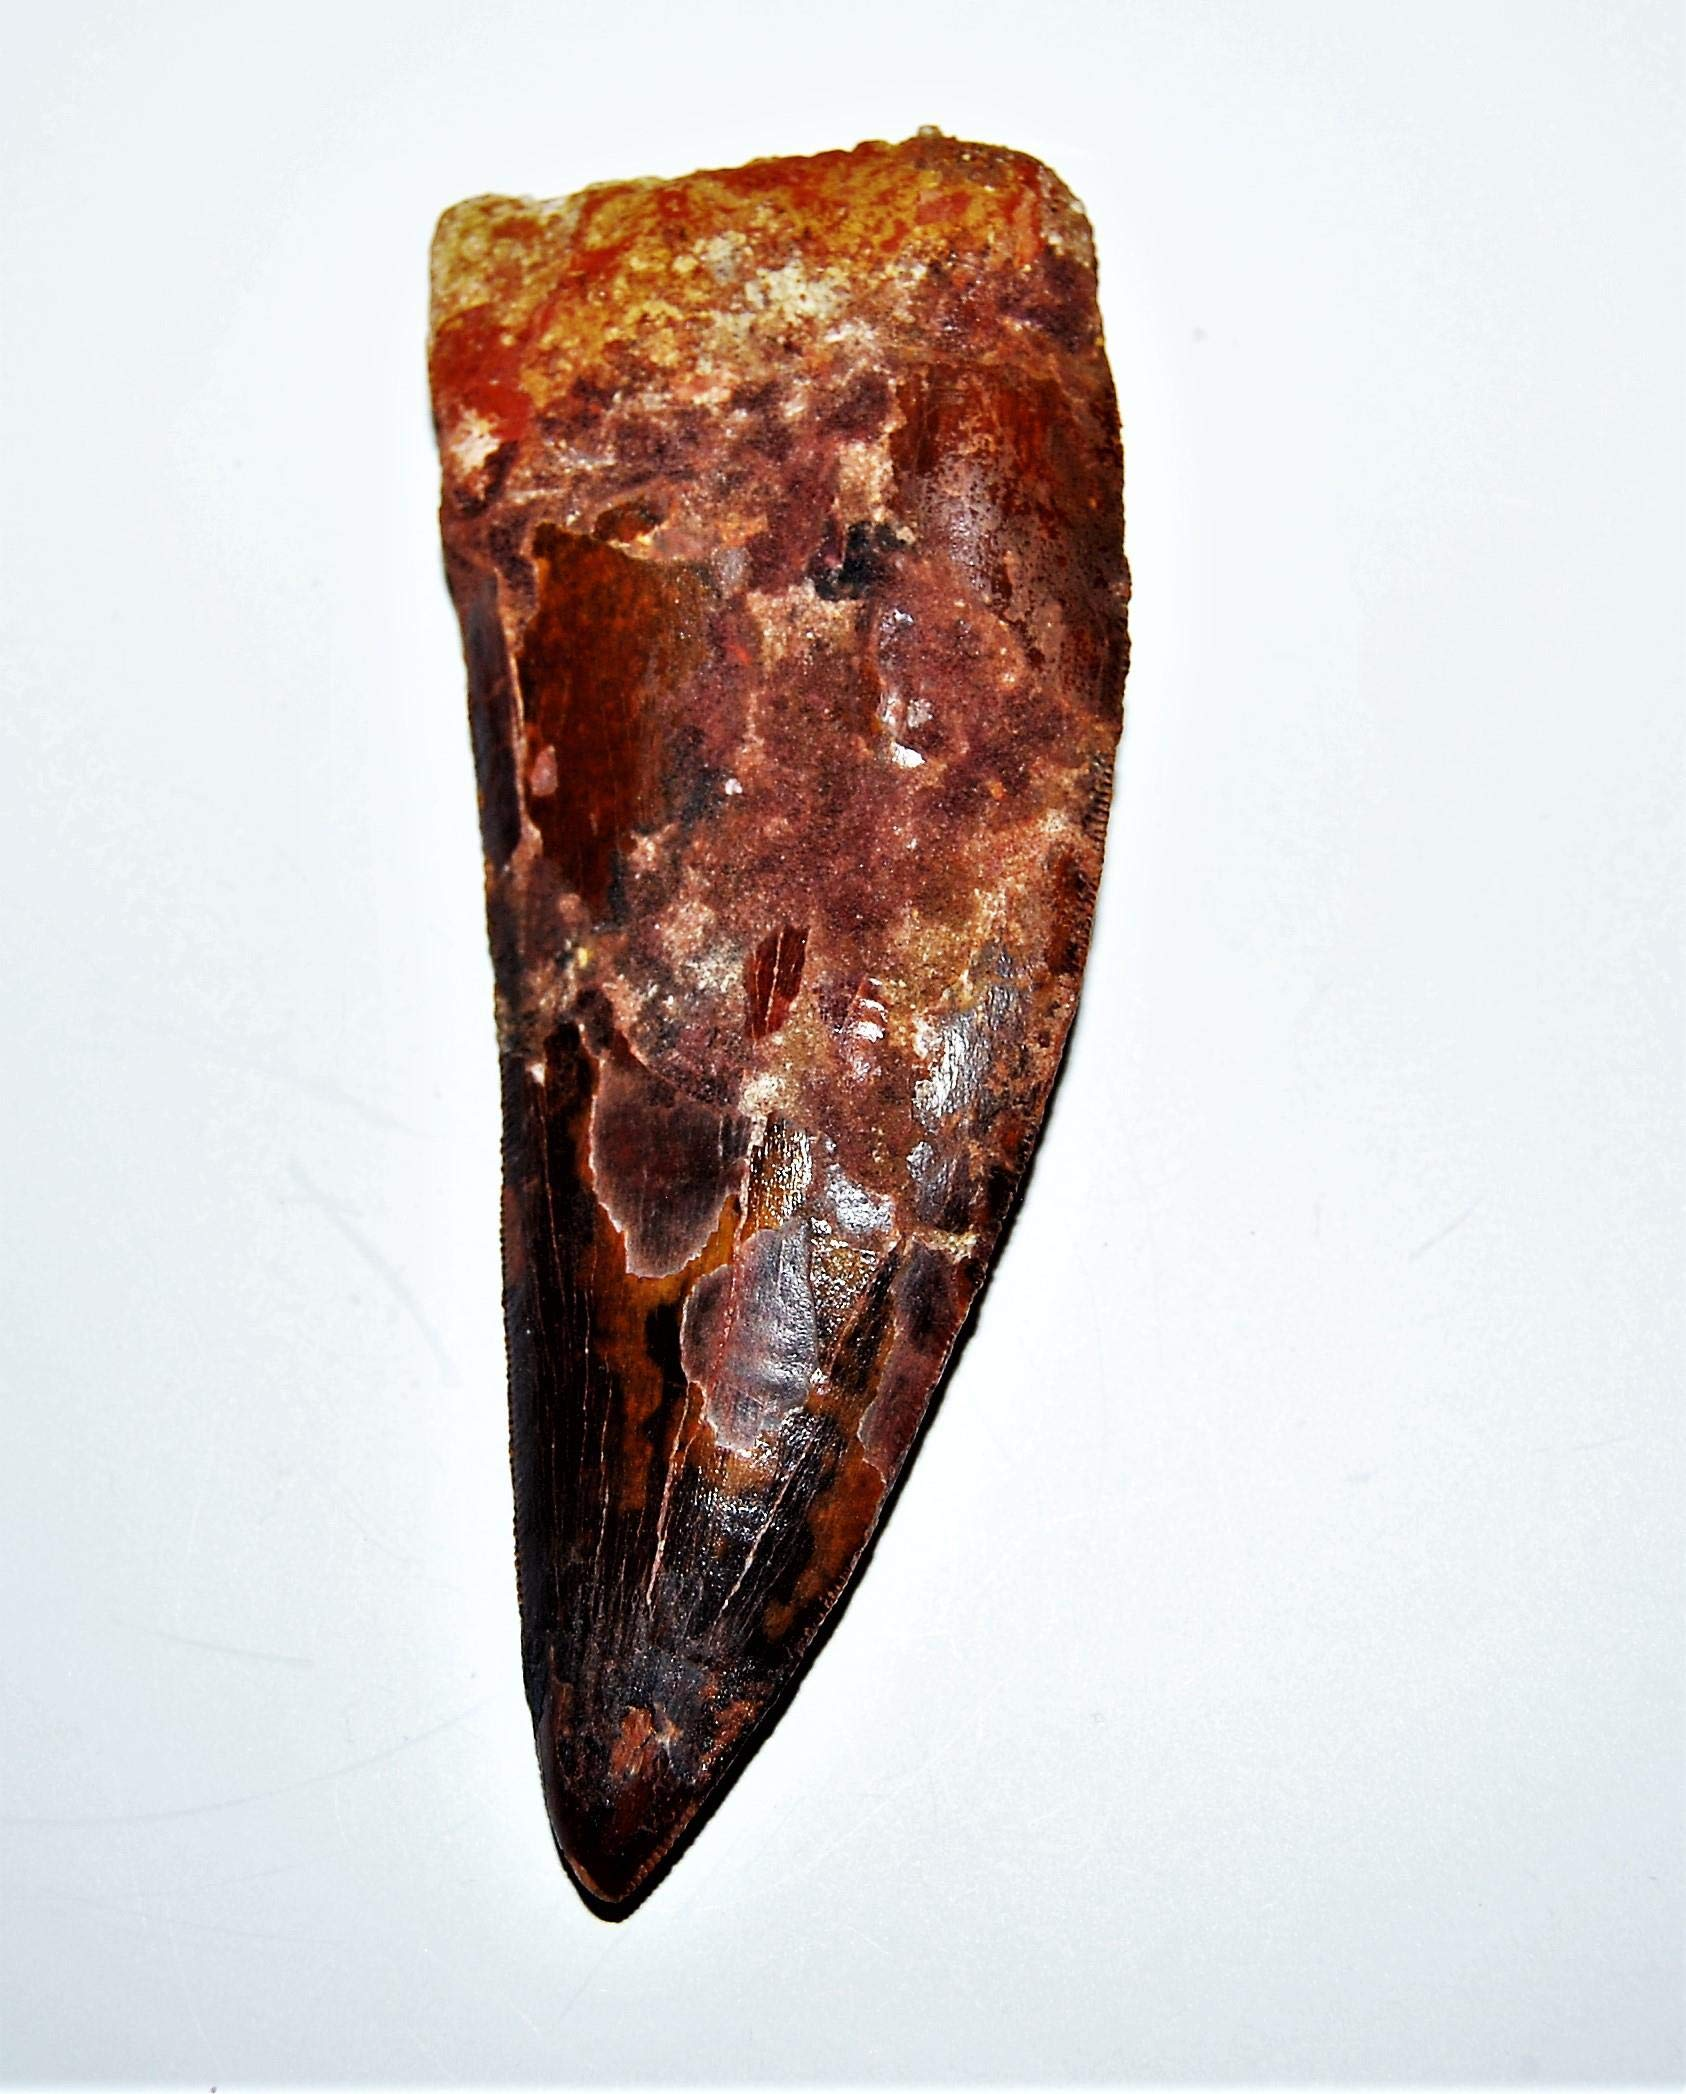 Carcharodontosaurus Dinosaur Tooth 4.313'' Fossil African T-Rex XLDB #14159 22o by Fossils, Meteorites, & More (Image #3)